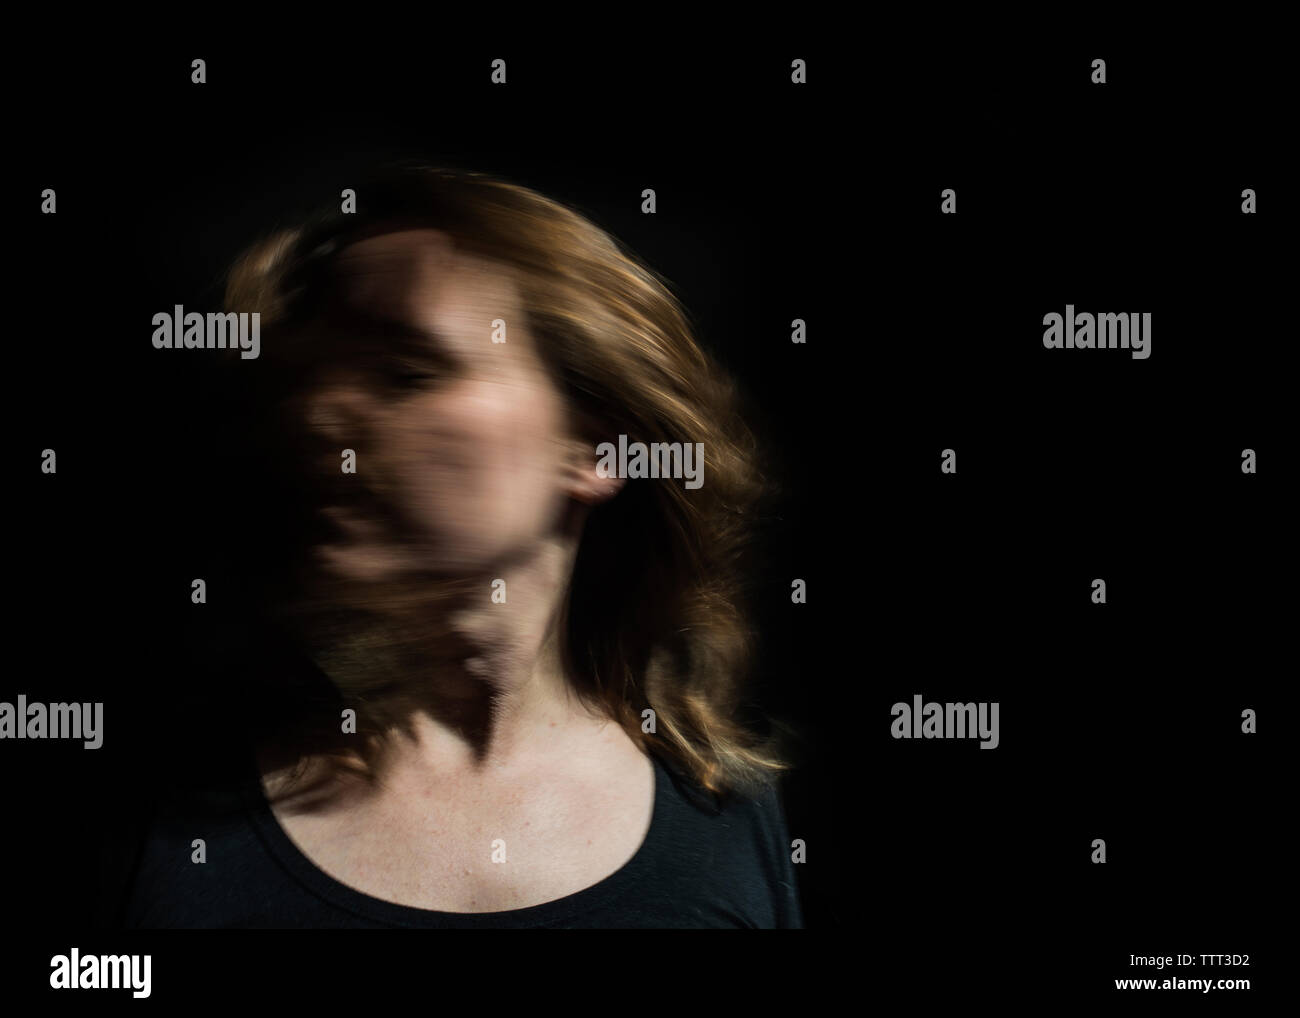 Close-up of woman shaking head while standing against black background - Stock Image